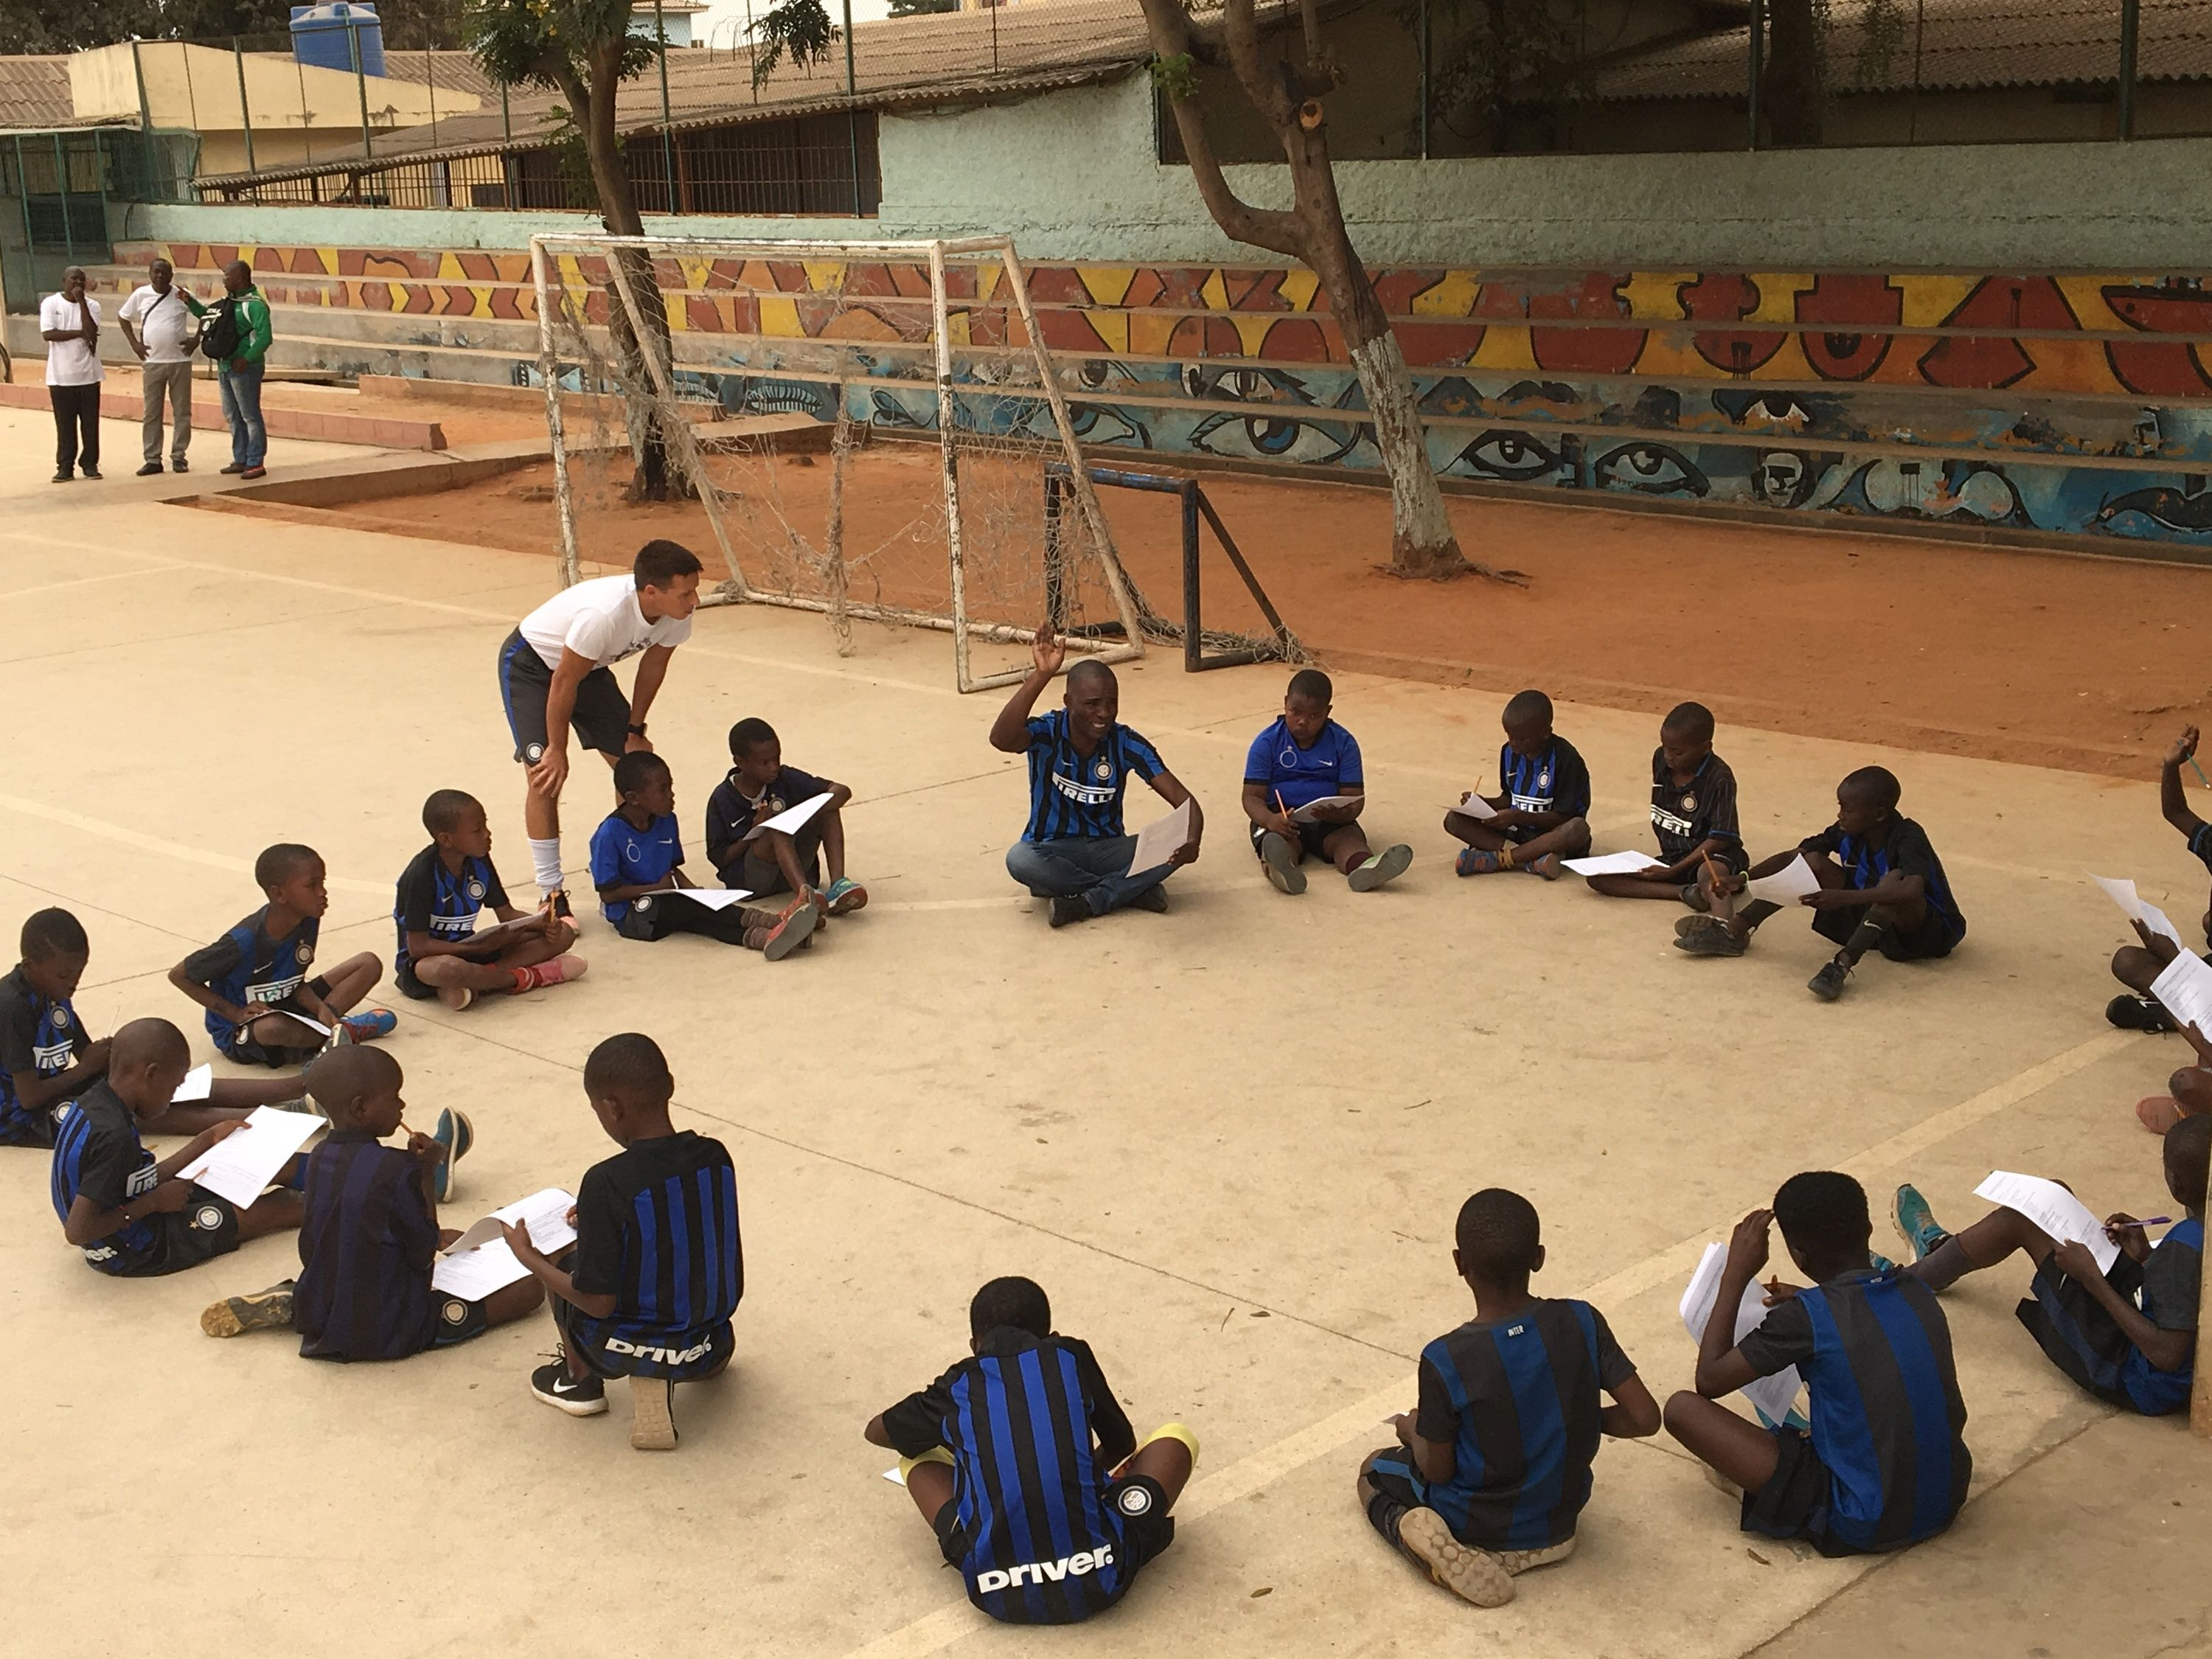 Angola: Different generations come together with the children's future in mind